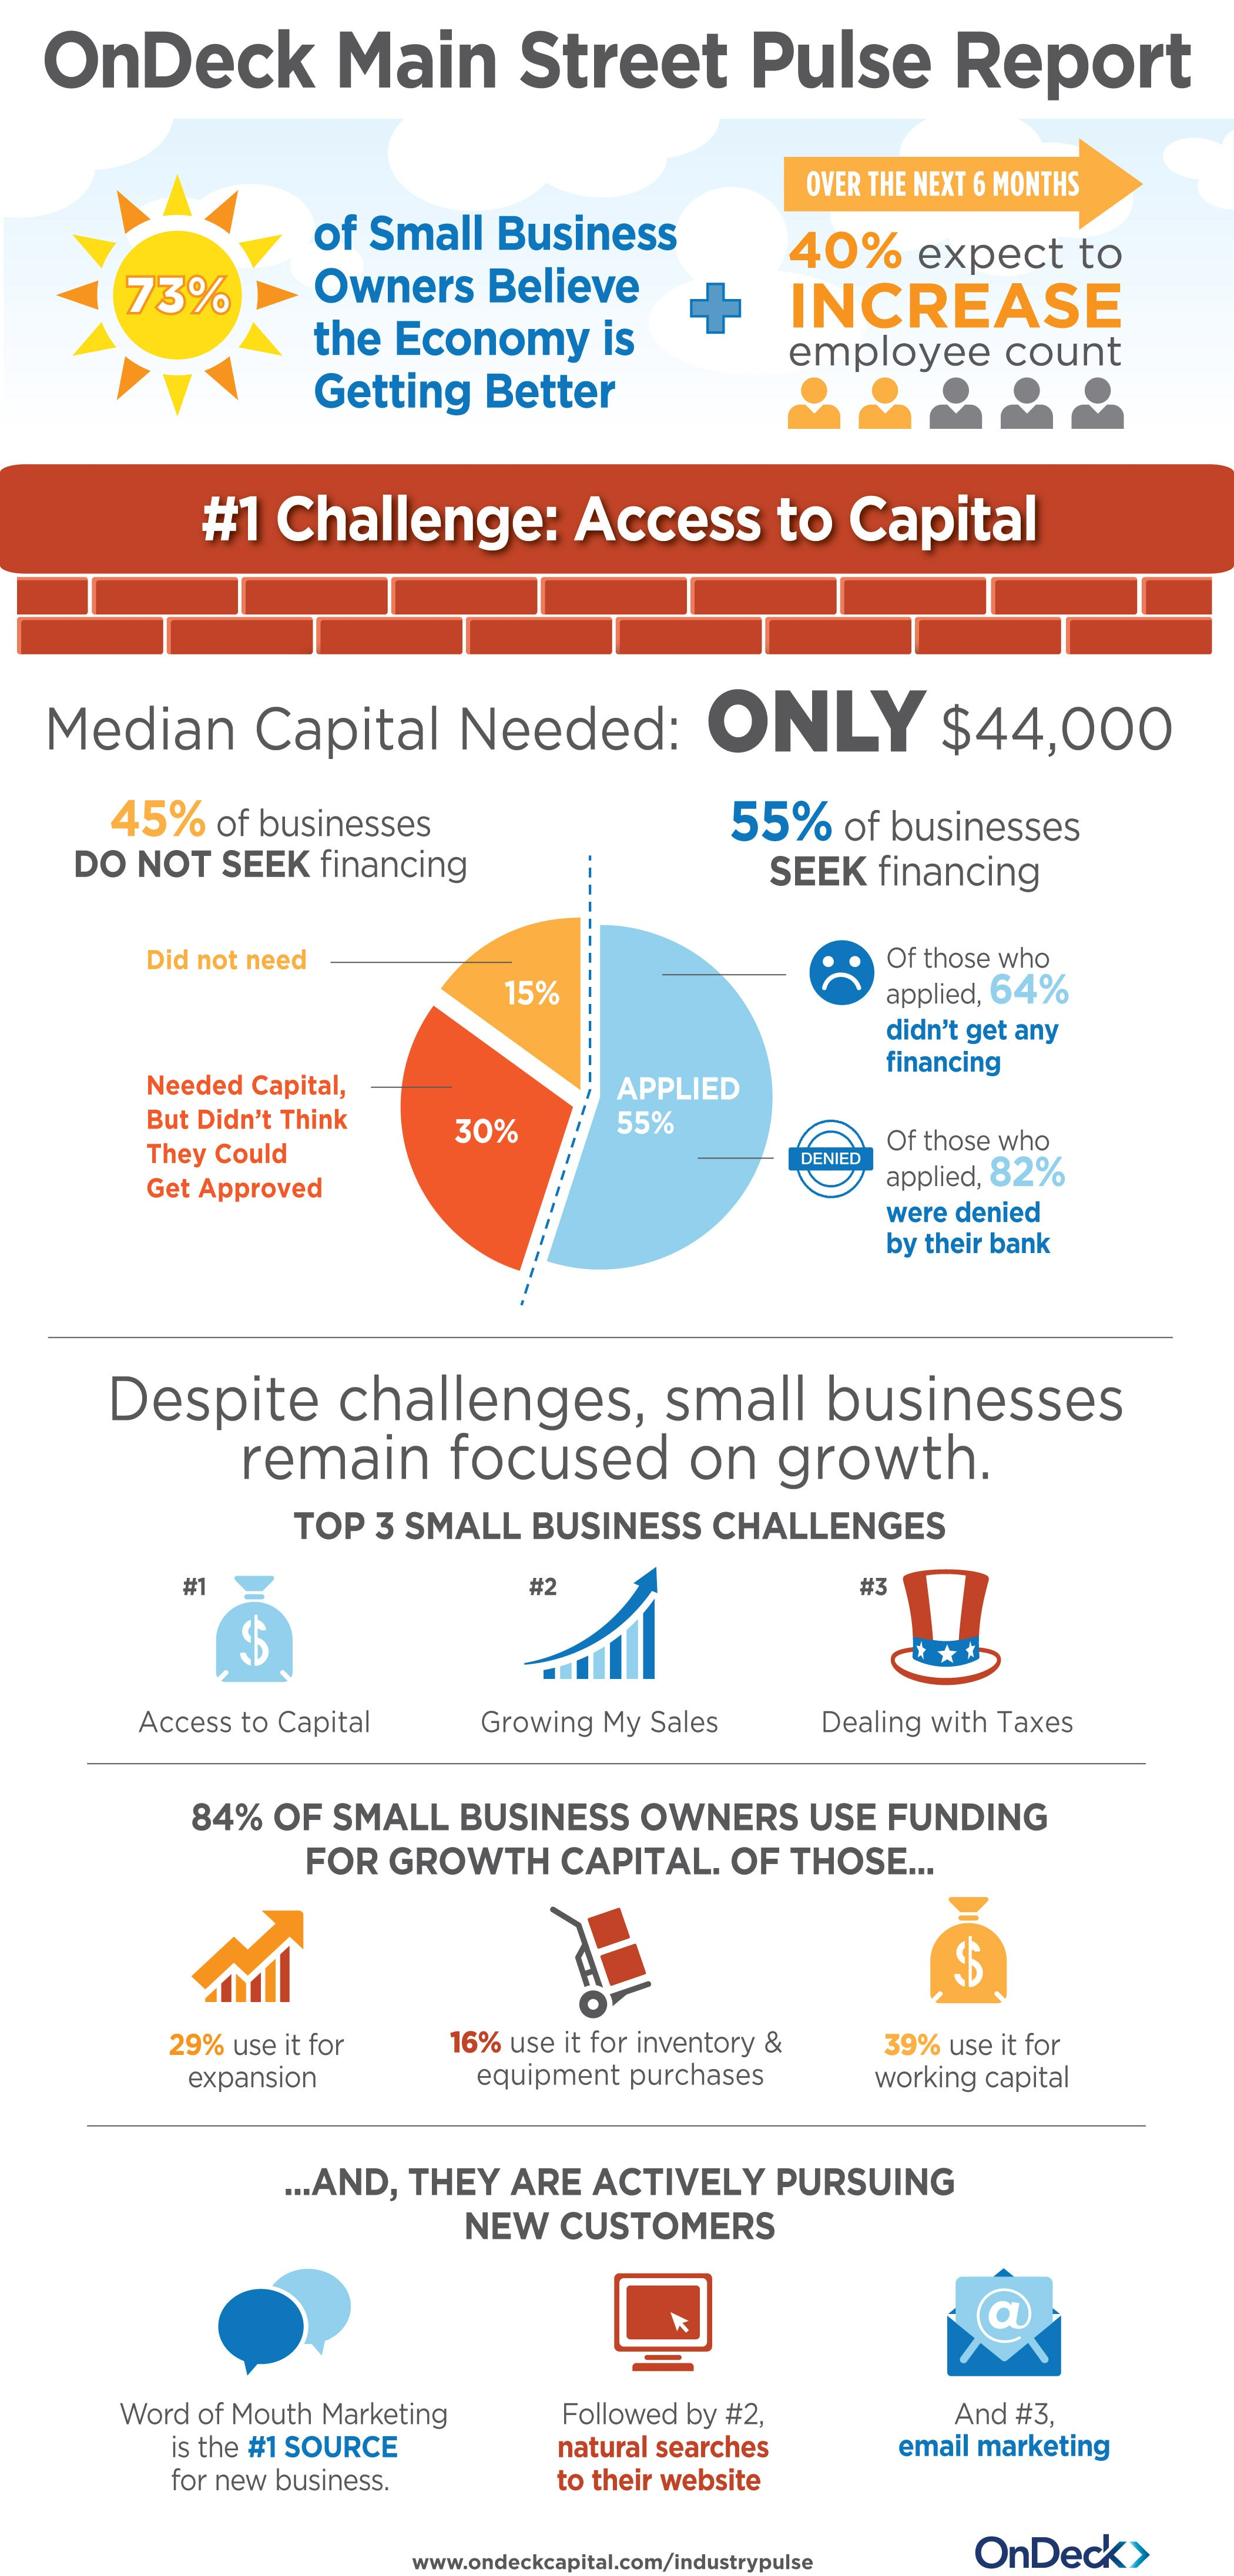 Top 3 Small-Business Challenges (Infographic)